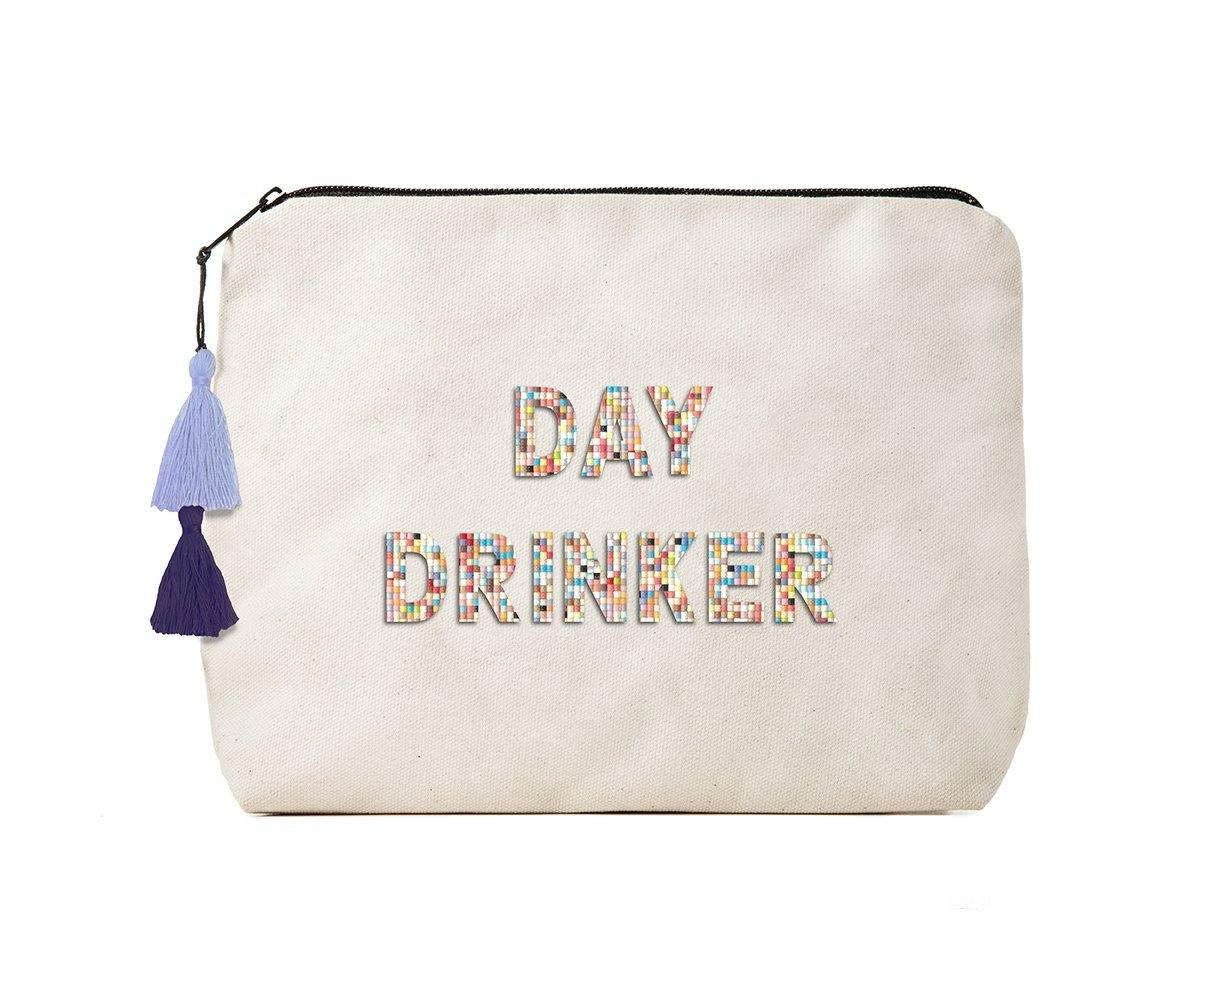 FR CANVAS BIKINI BAG CONFETTI BEADS DAY DRINK